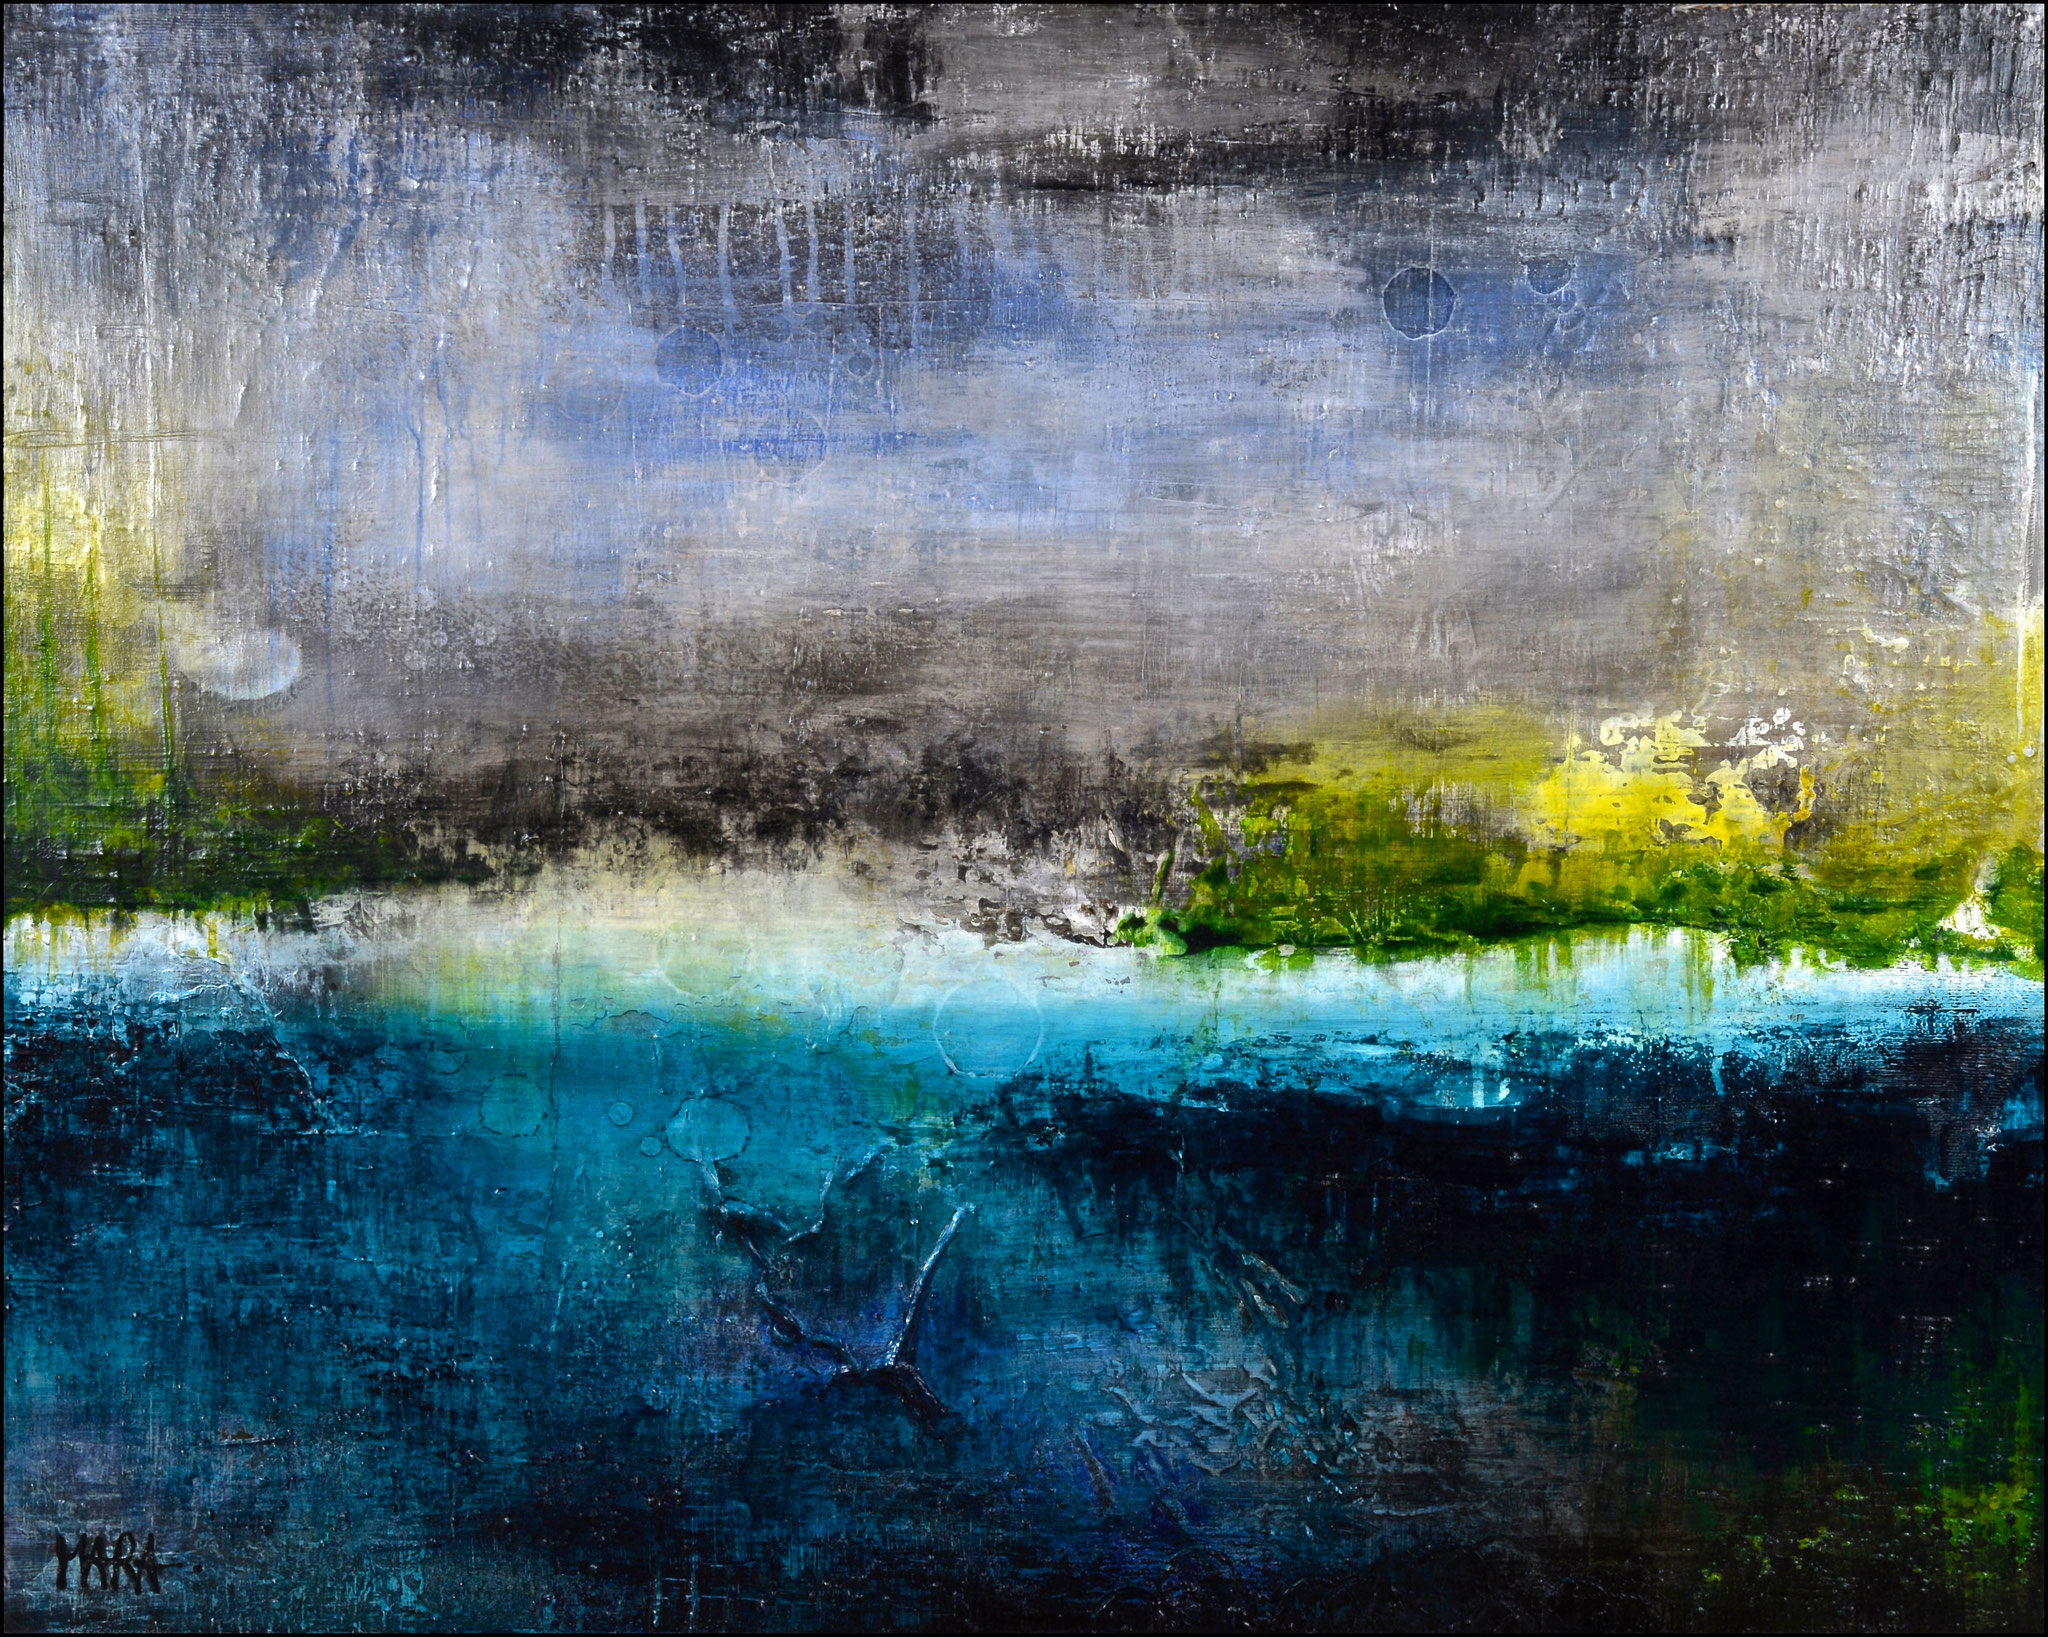 Clearness - 80x100 cm